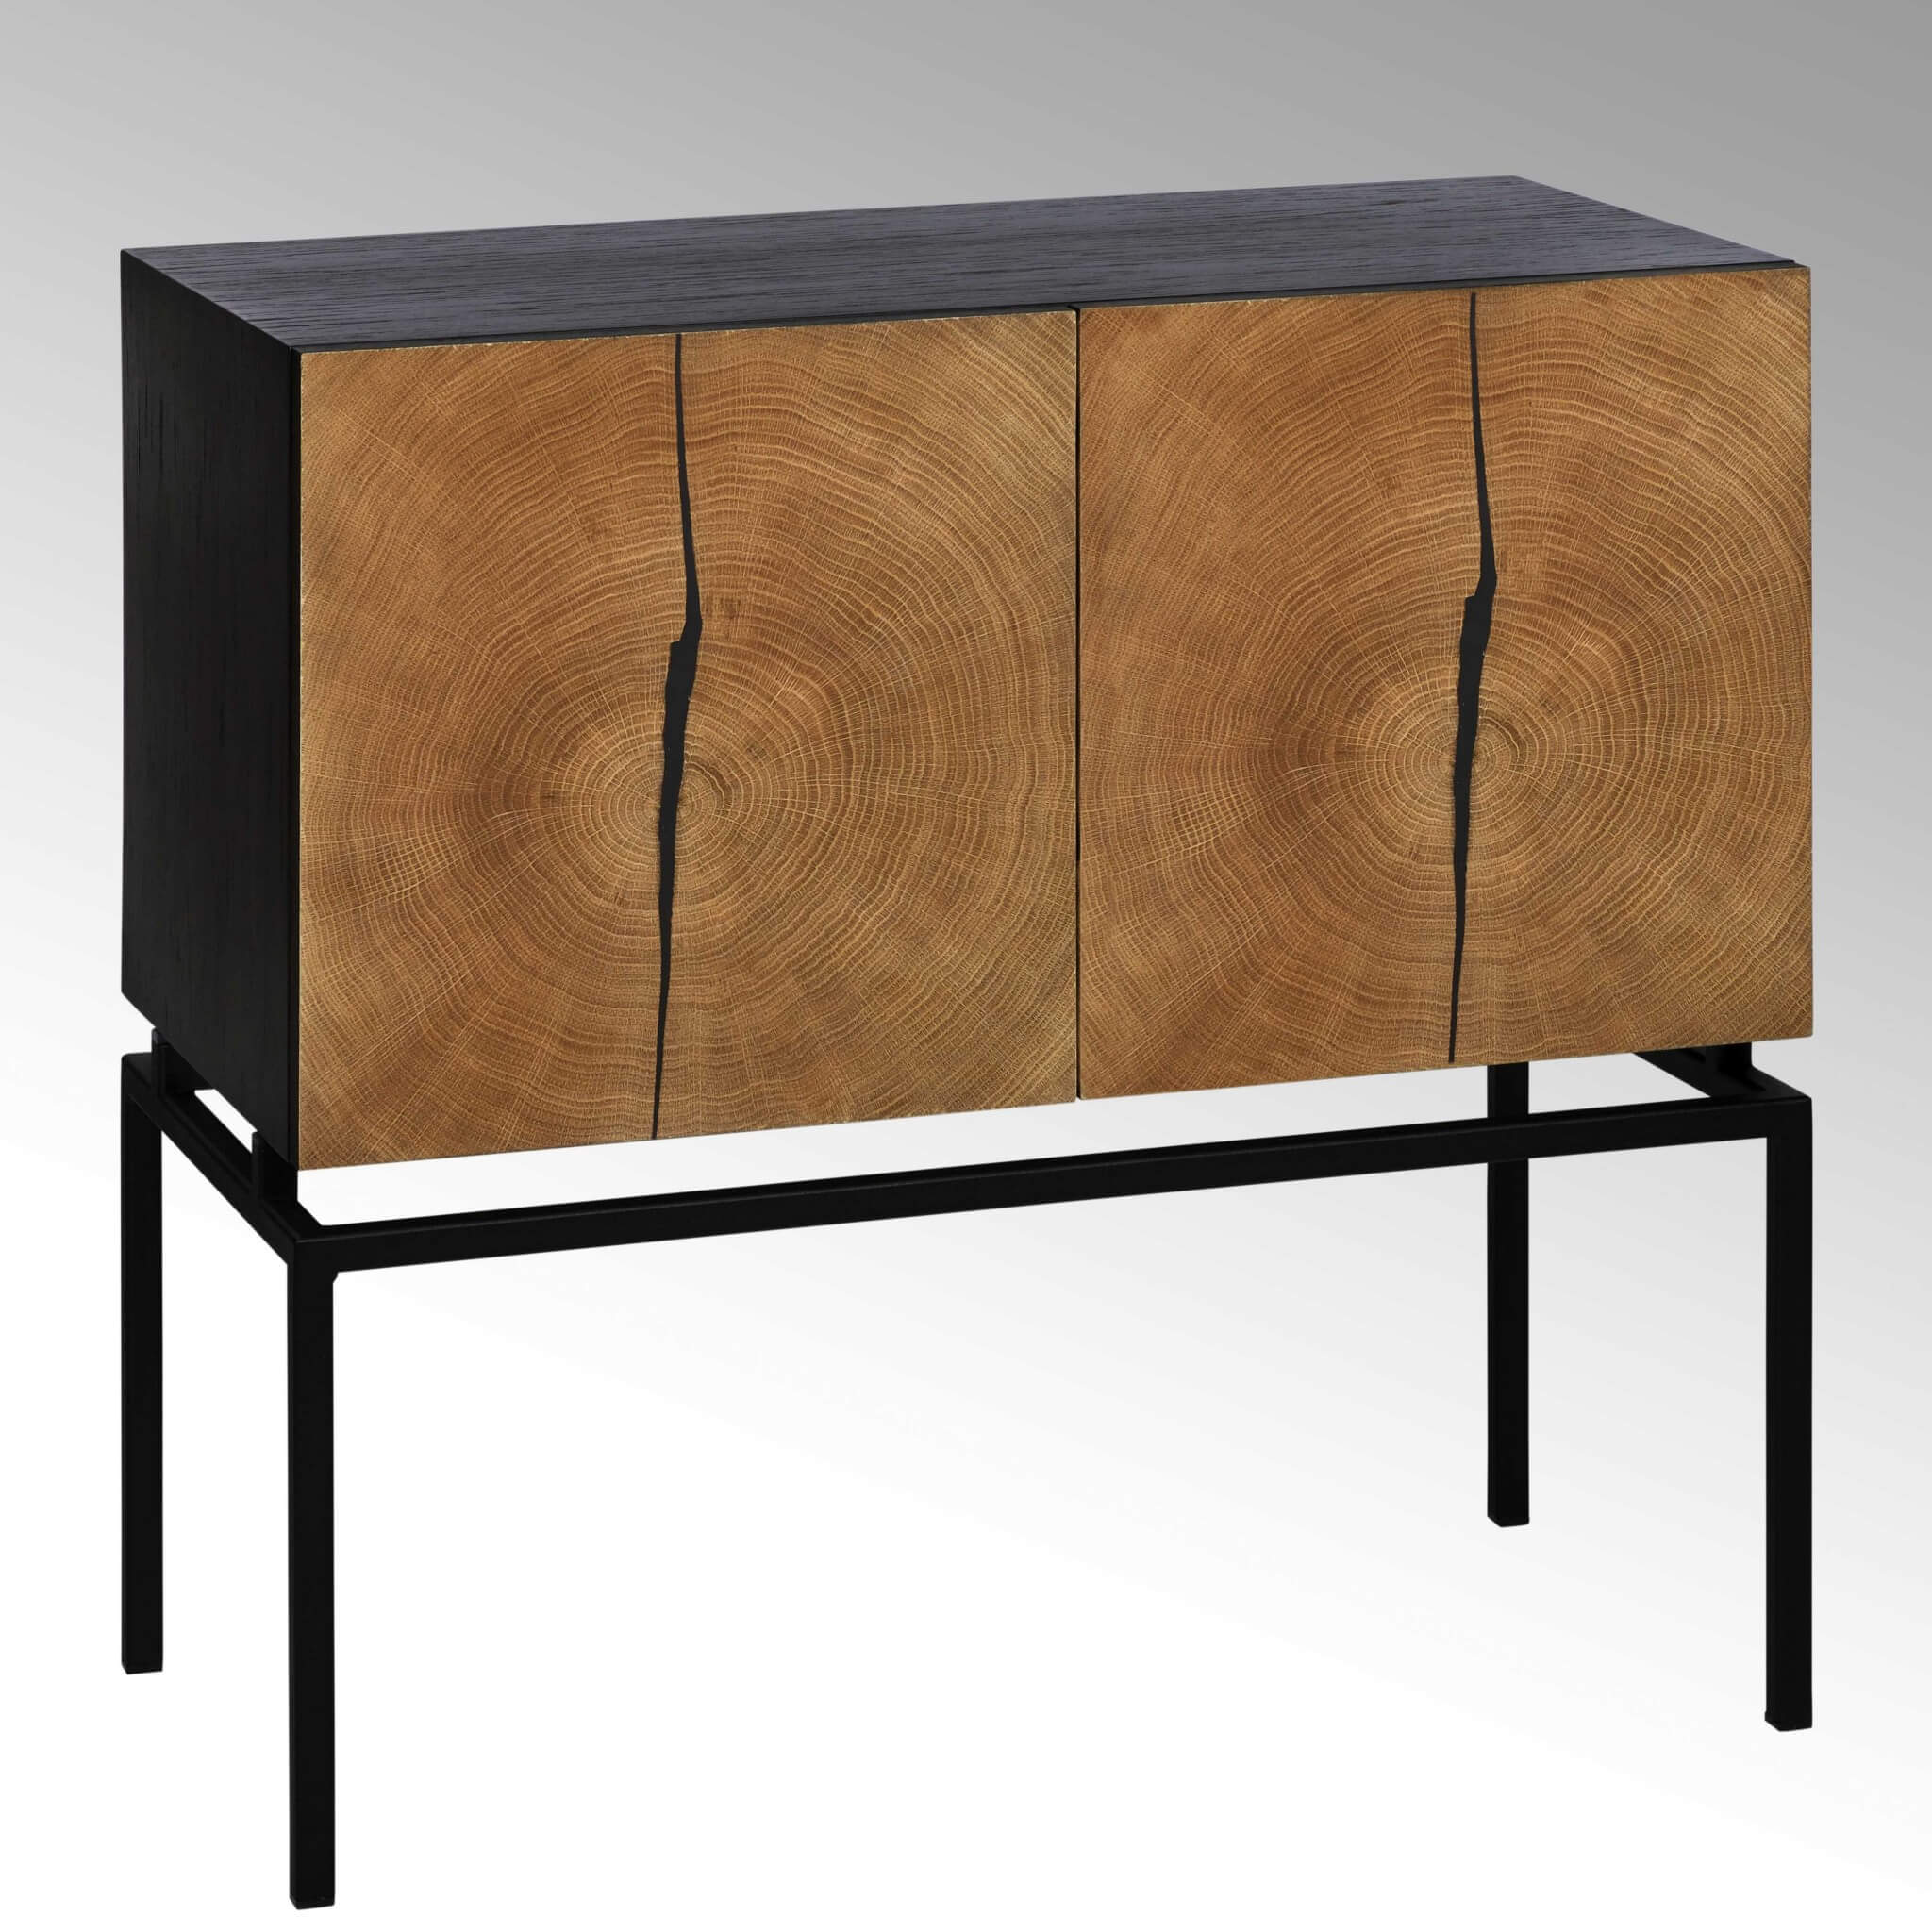 lambert kay eiche sideboard schwarz t ren mit. Black Bedroom Furniture Sets. Home Design Ideas